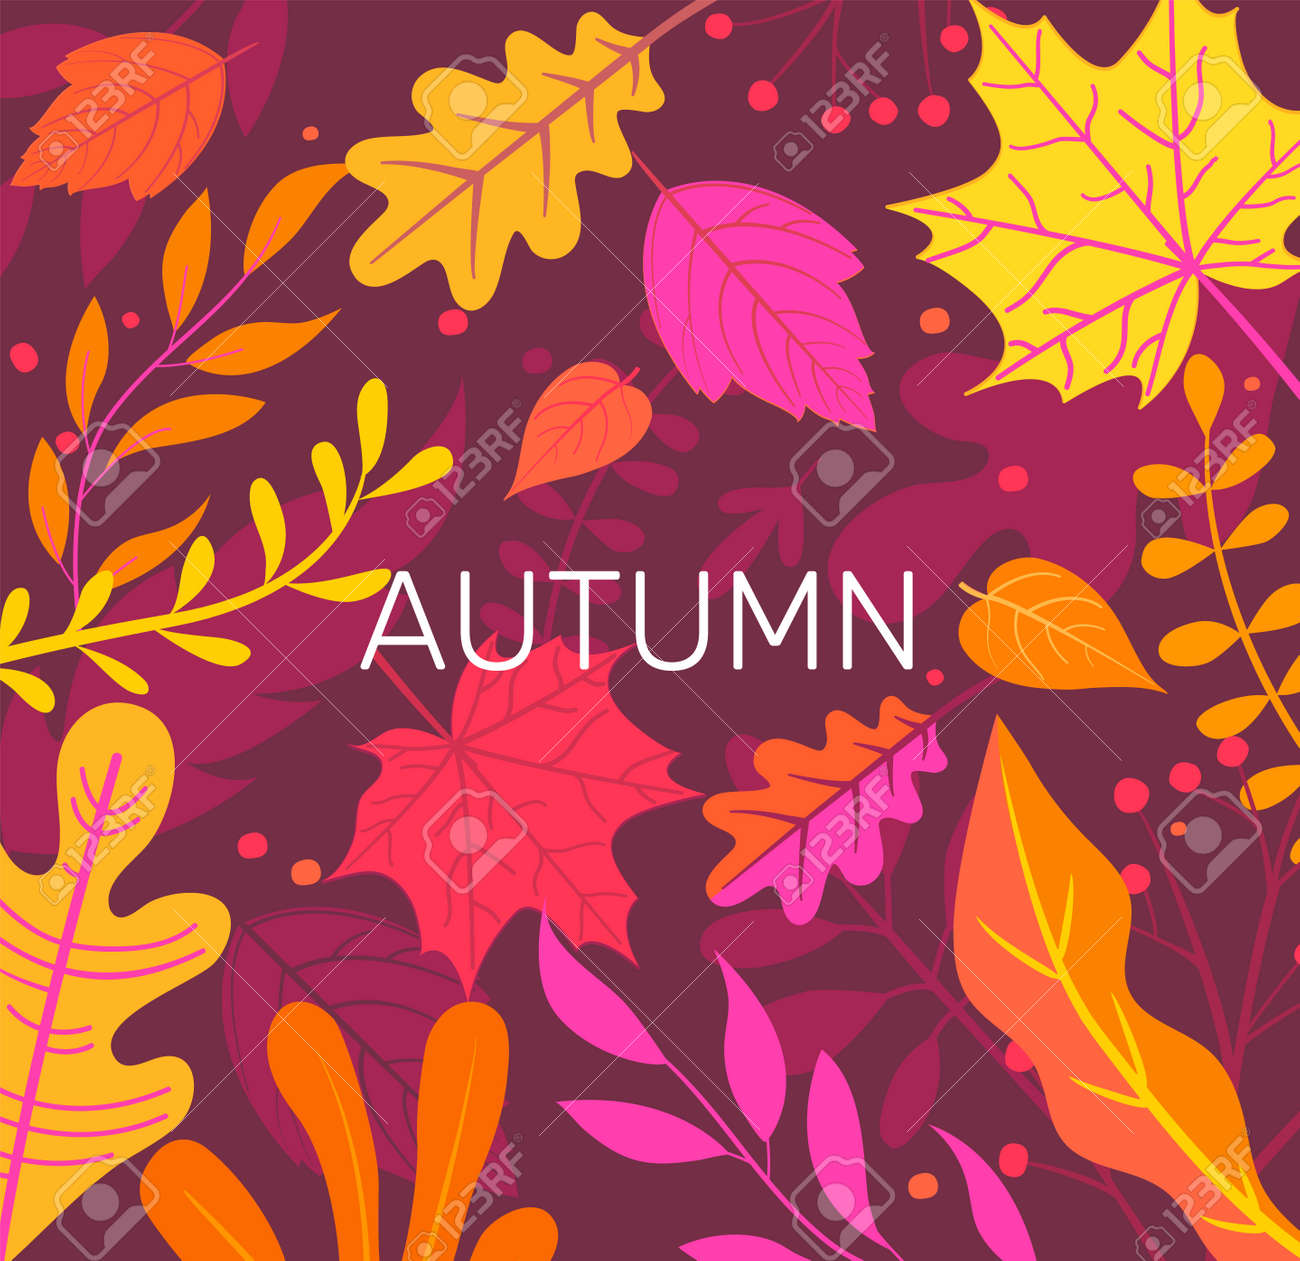 Autumn banner full of colorful autumn leaves. - 171534882